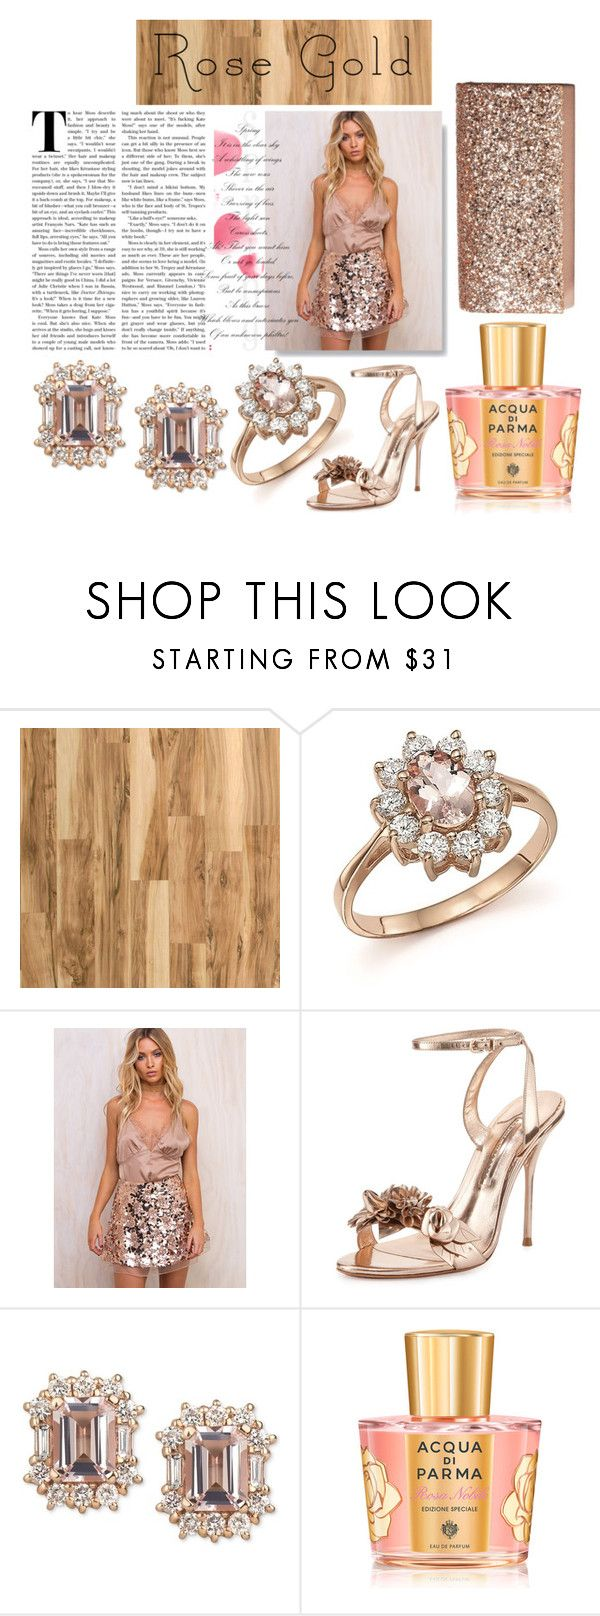 """""""In Rose Gold"""" by missdelozier ❤ liked on Polyvore featuring Home Decorators Collection, Bloomingdale's, Sophia Webster, Acqua di Parma, Jessica McClintock, rosegold and contestentry"""